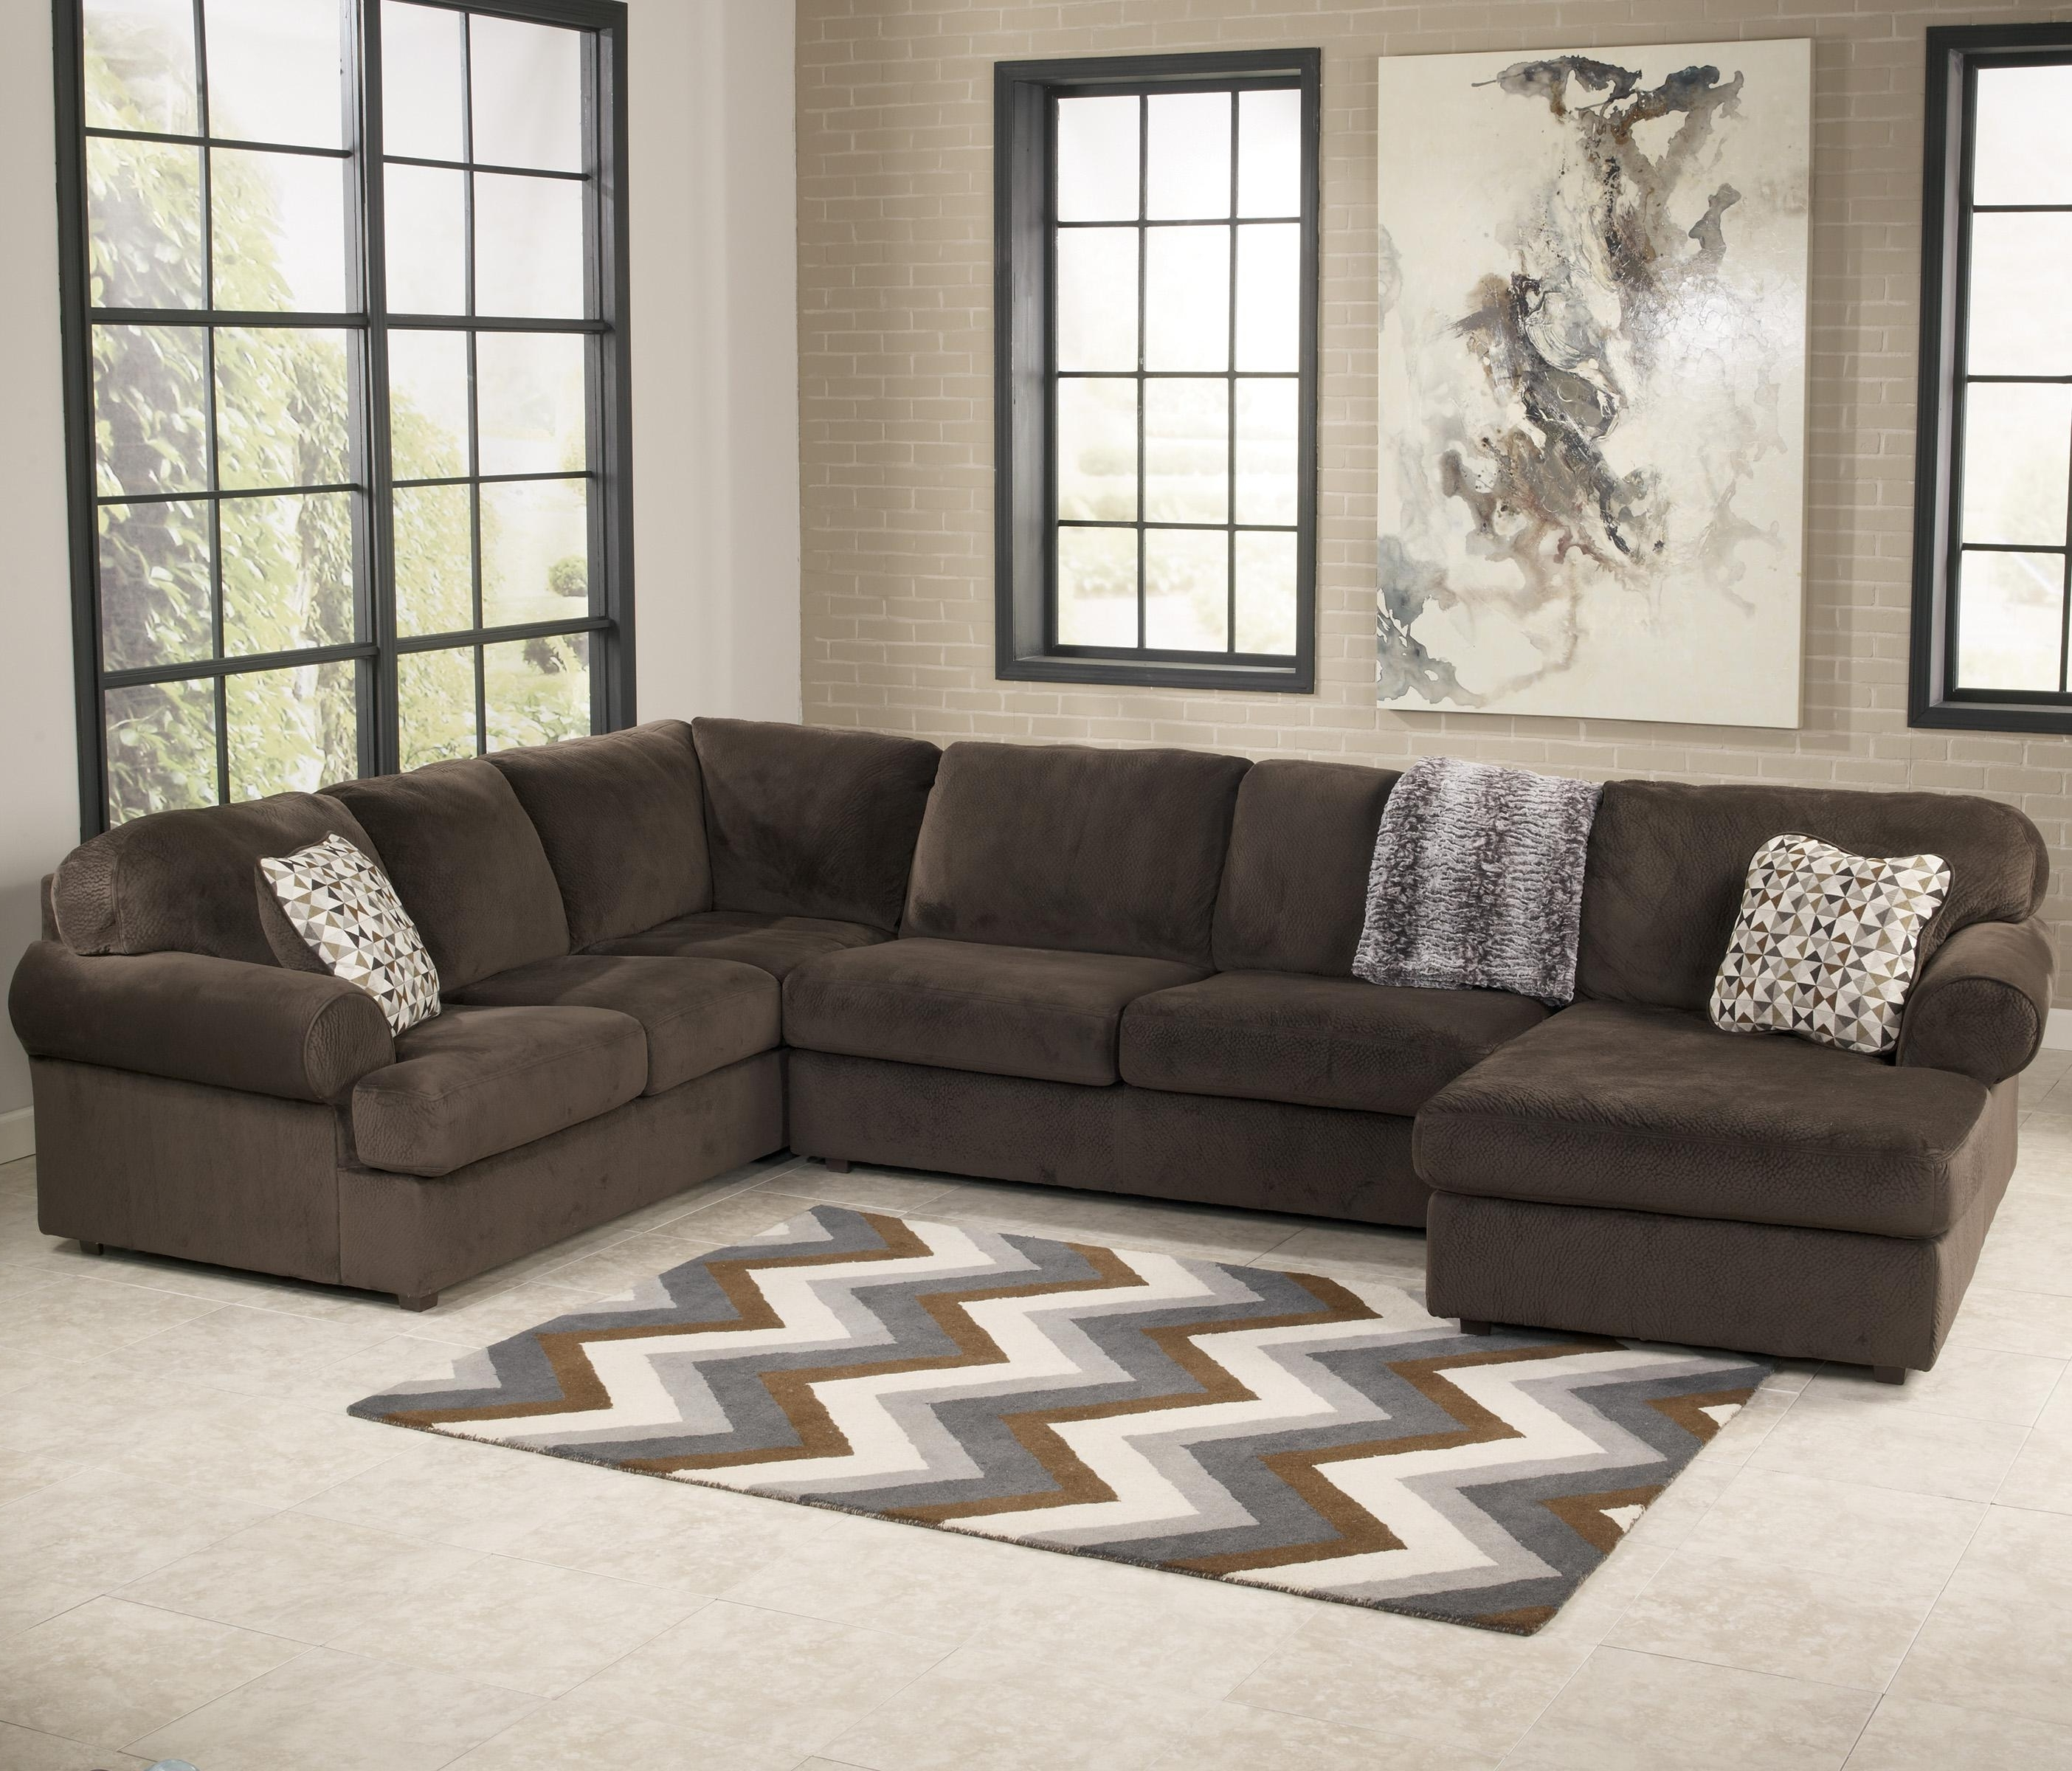 Newest Sectional Couches Contemporary Sofas Chicago The Room Place Credit In Sectional Sofas At Chicago (View 4 of 20)